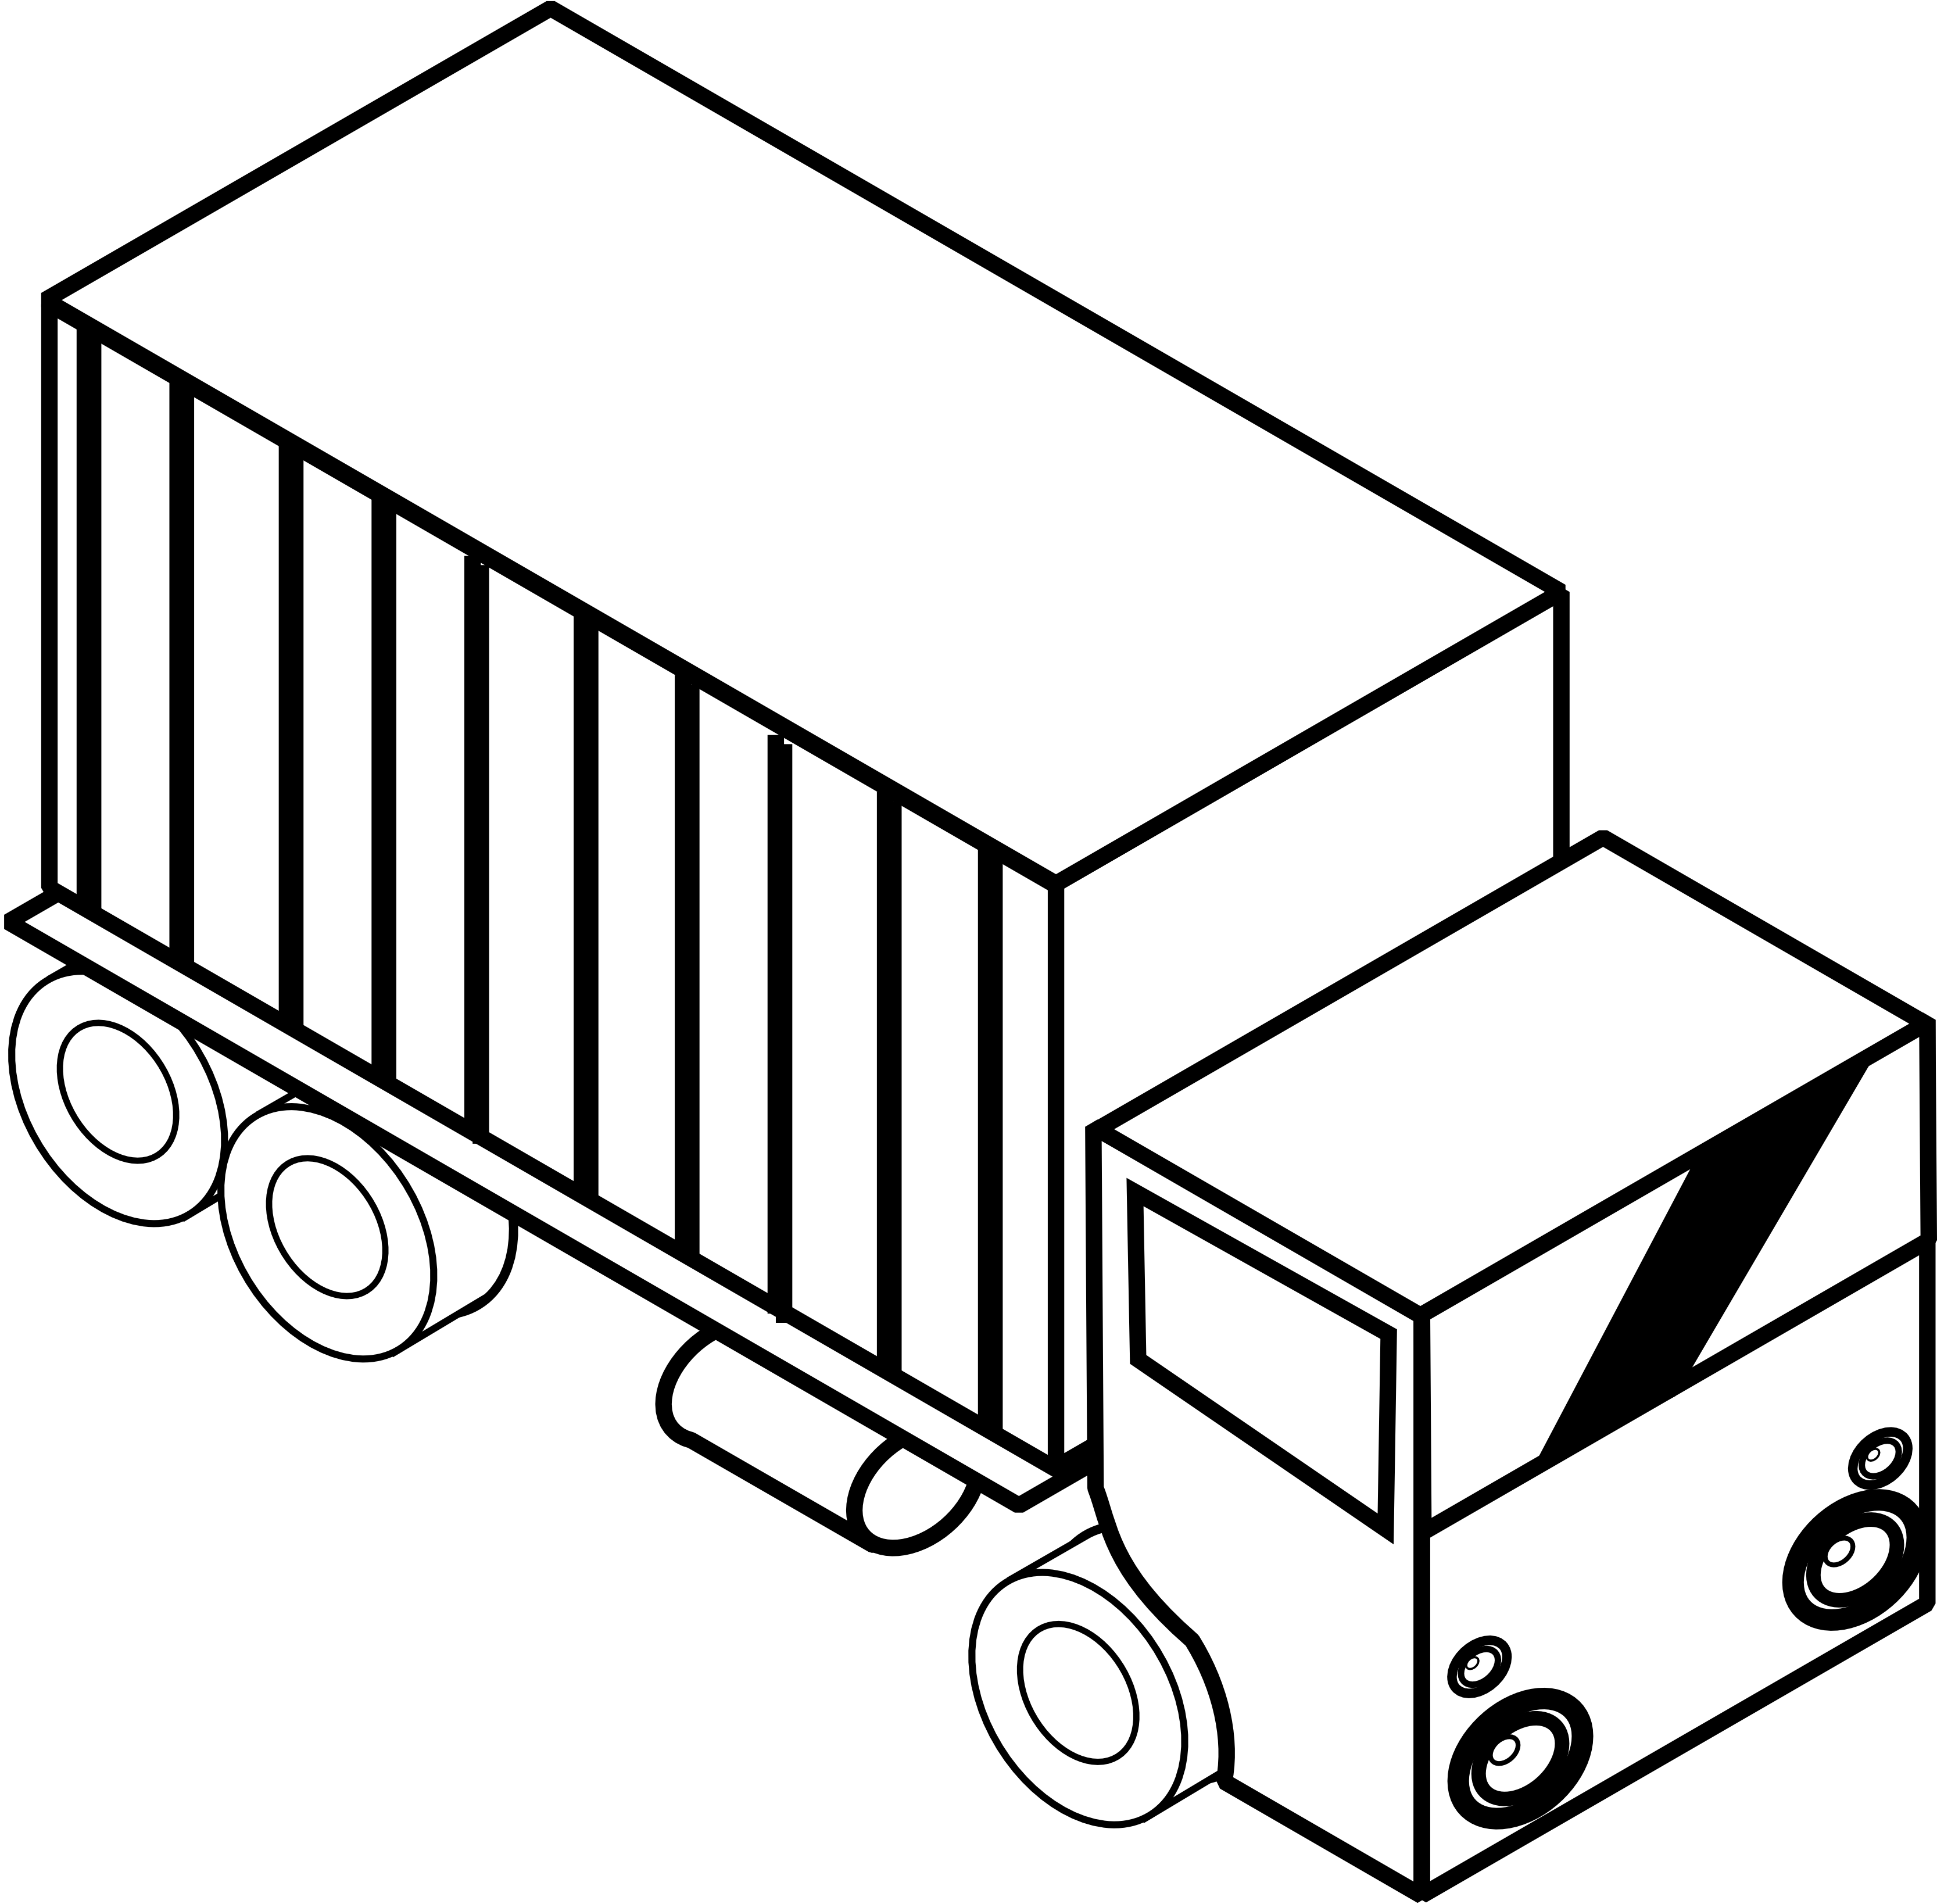 coloring truck clipart black and white dump truck clip art black and white 20 free cliparts white and clipart black coloring truck